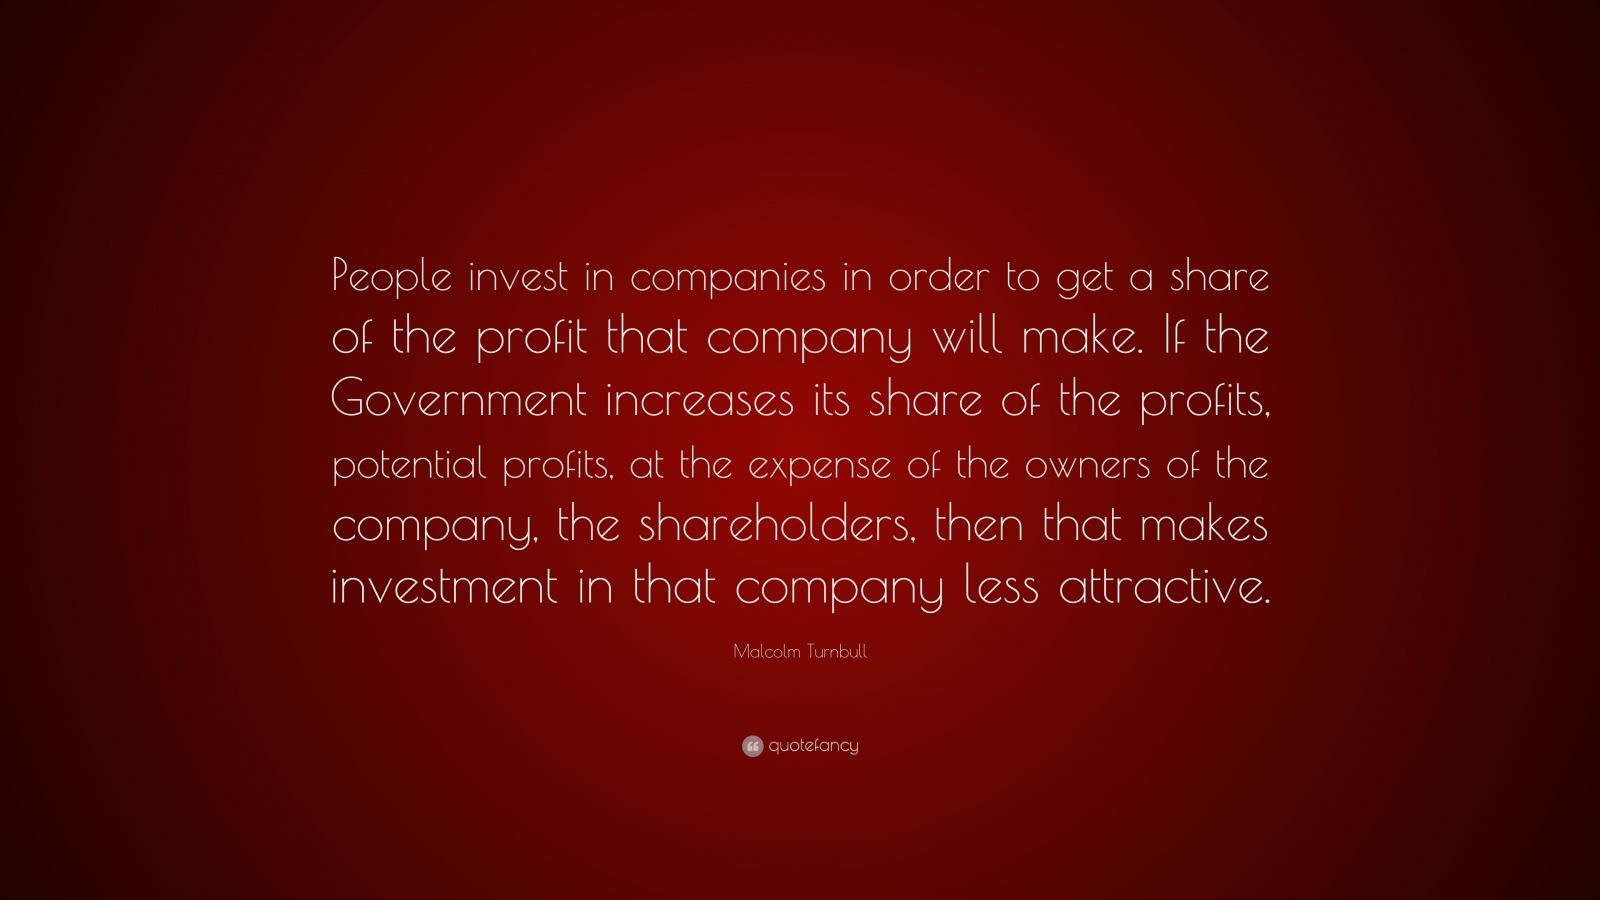 """Malcolm Turnbull Quote: """"People invest in companies in order to get a share of the profit that company will make. If the Government increases its share of the profits, potential profits, at the expense of the owners of the company, the shareholders, then that makes investment in that company less attractive."""""""